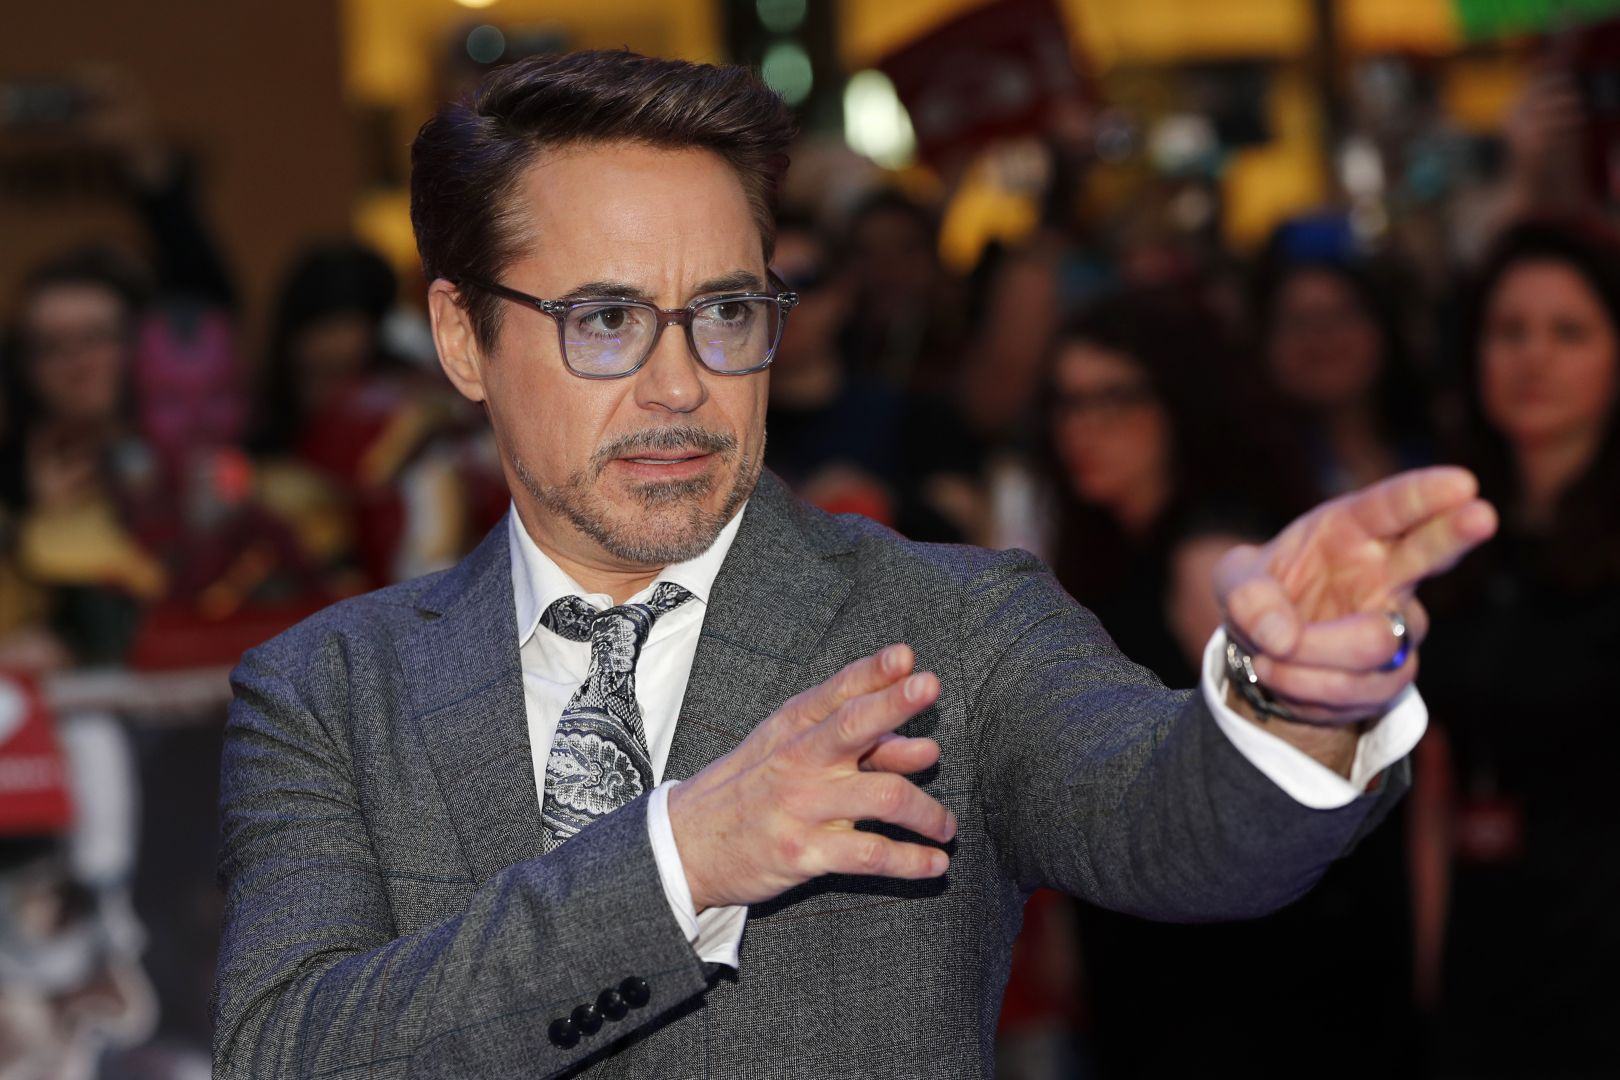 Robert downey Jr. at Captain America Civil War premiere.